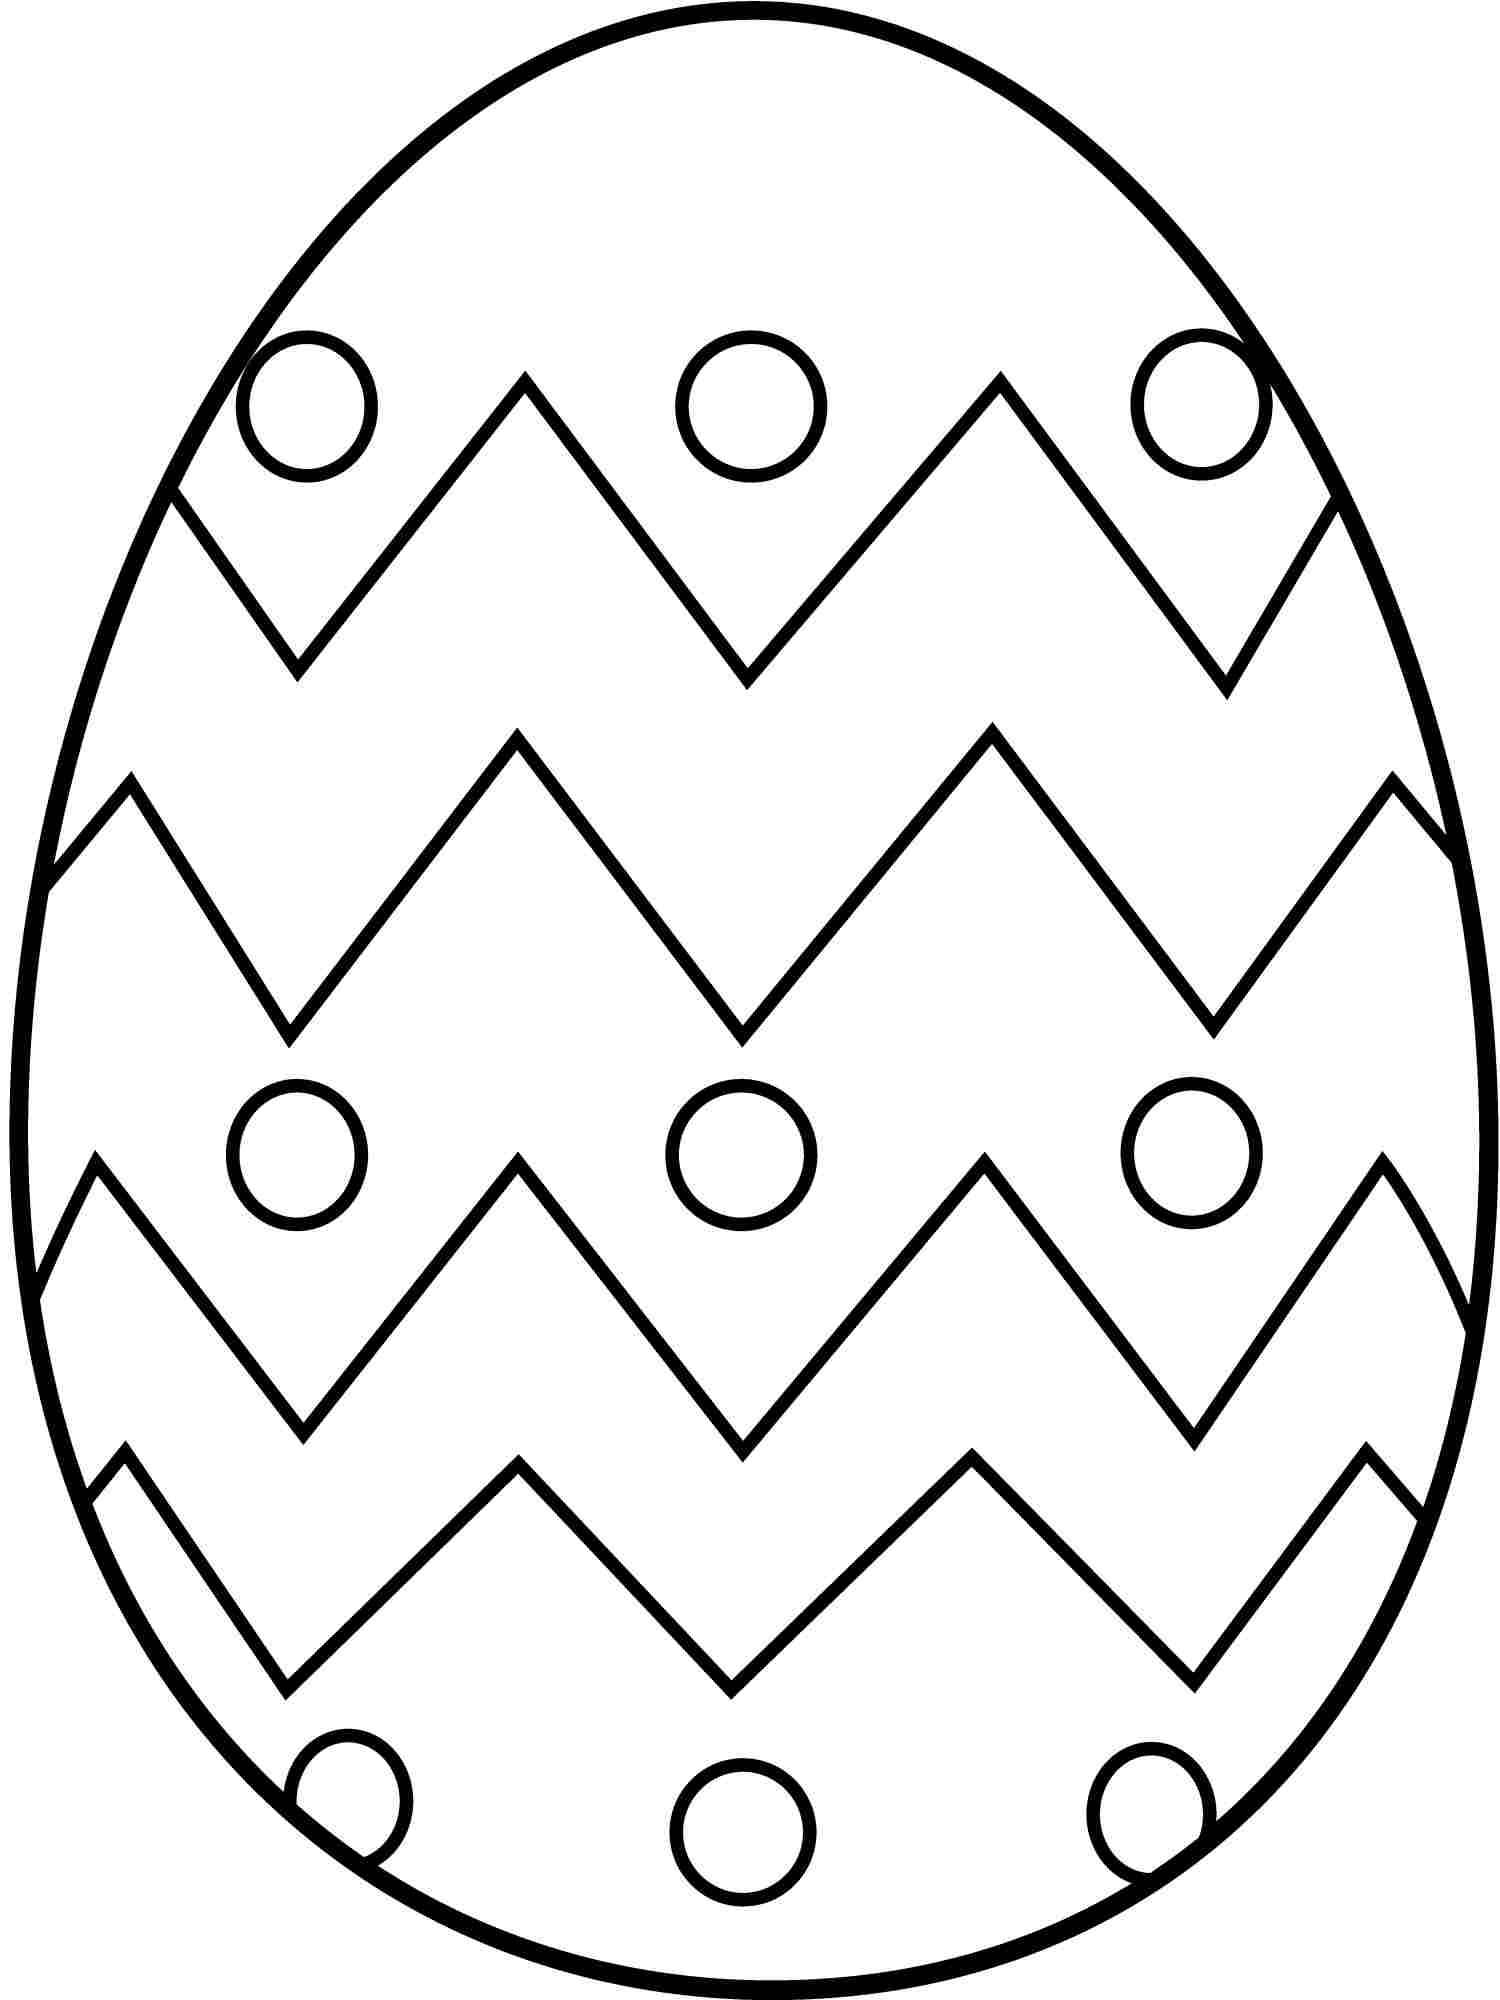 Easter Drawing For Kids at GetDrawings.com | Free for personal use ...